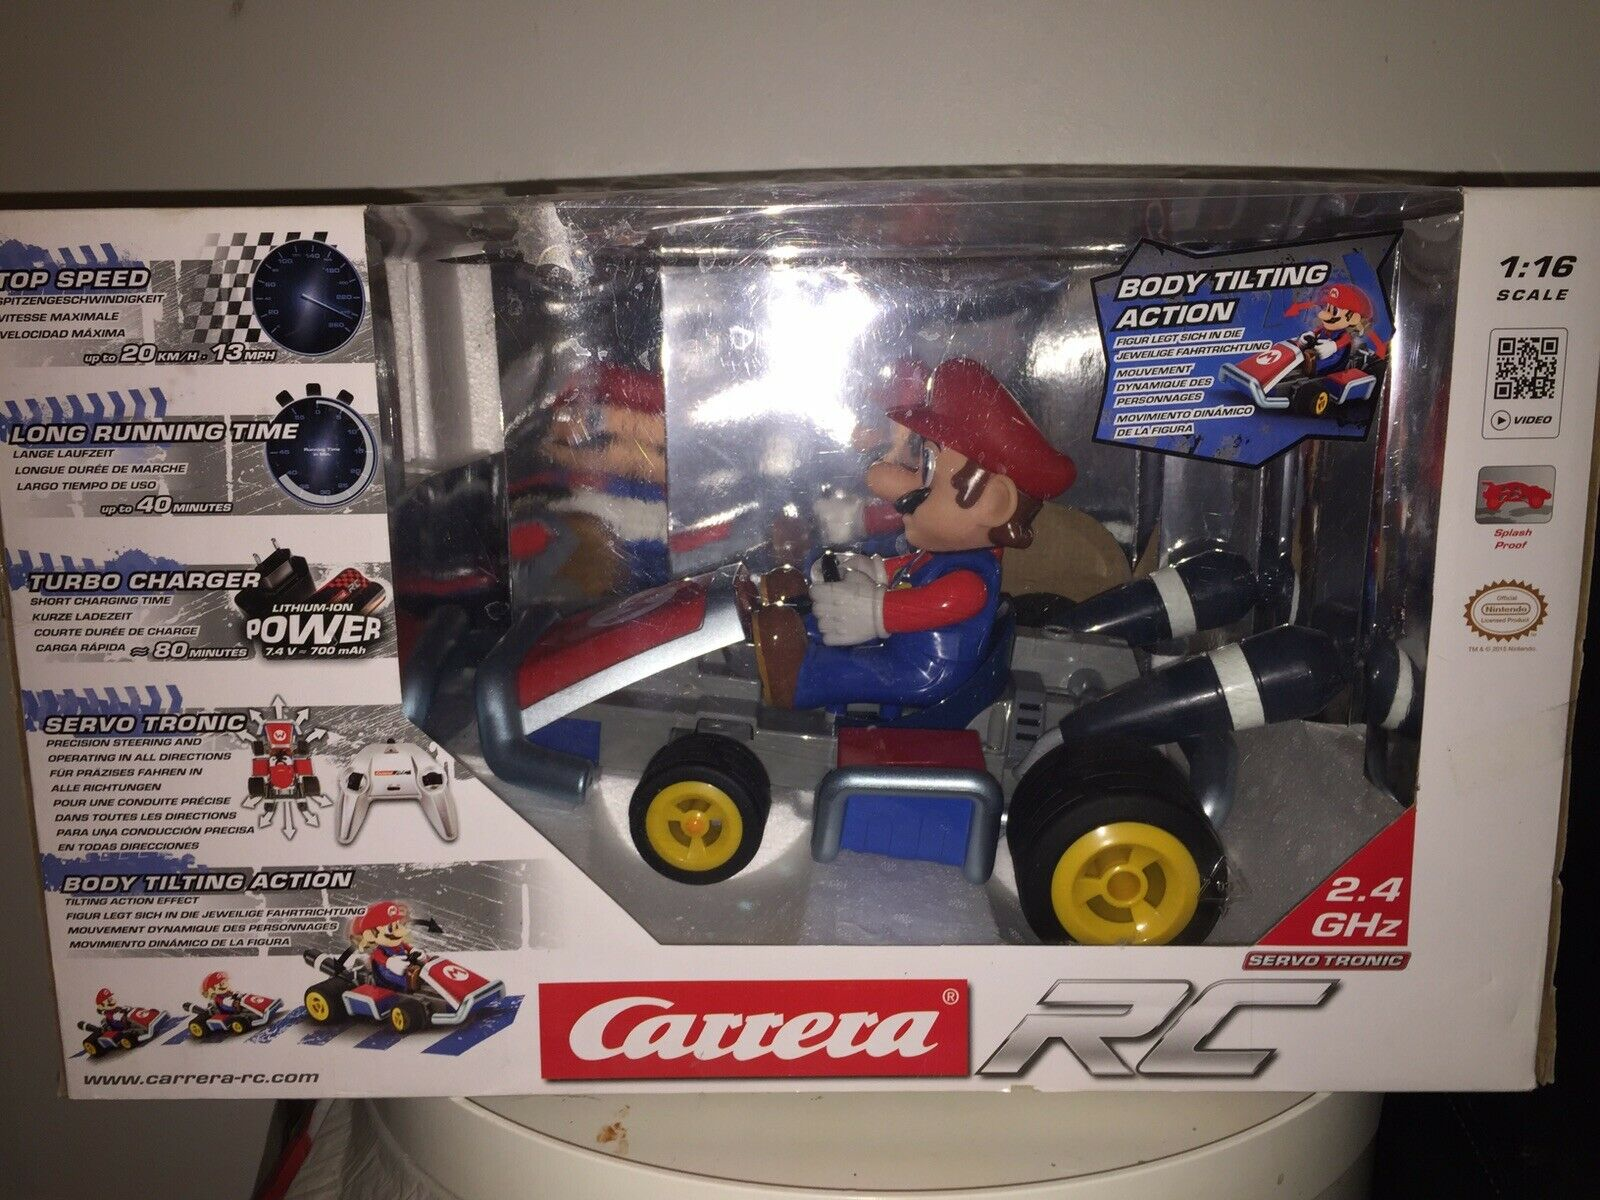 Mario Kart 7 Rc Car With Tilting Driver. Never Been Taken Out Of Box